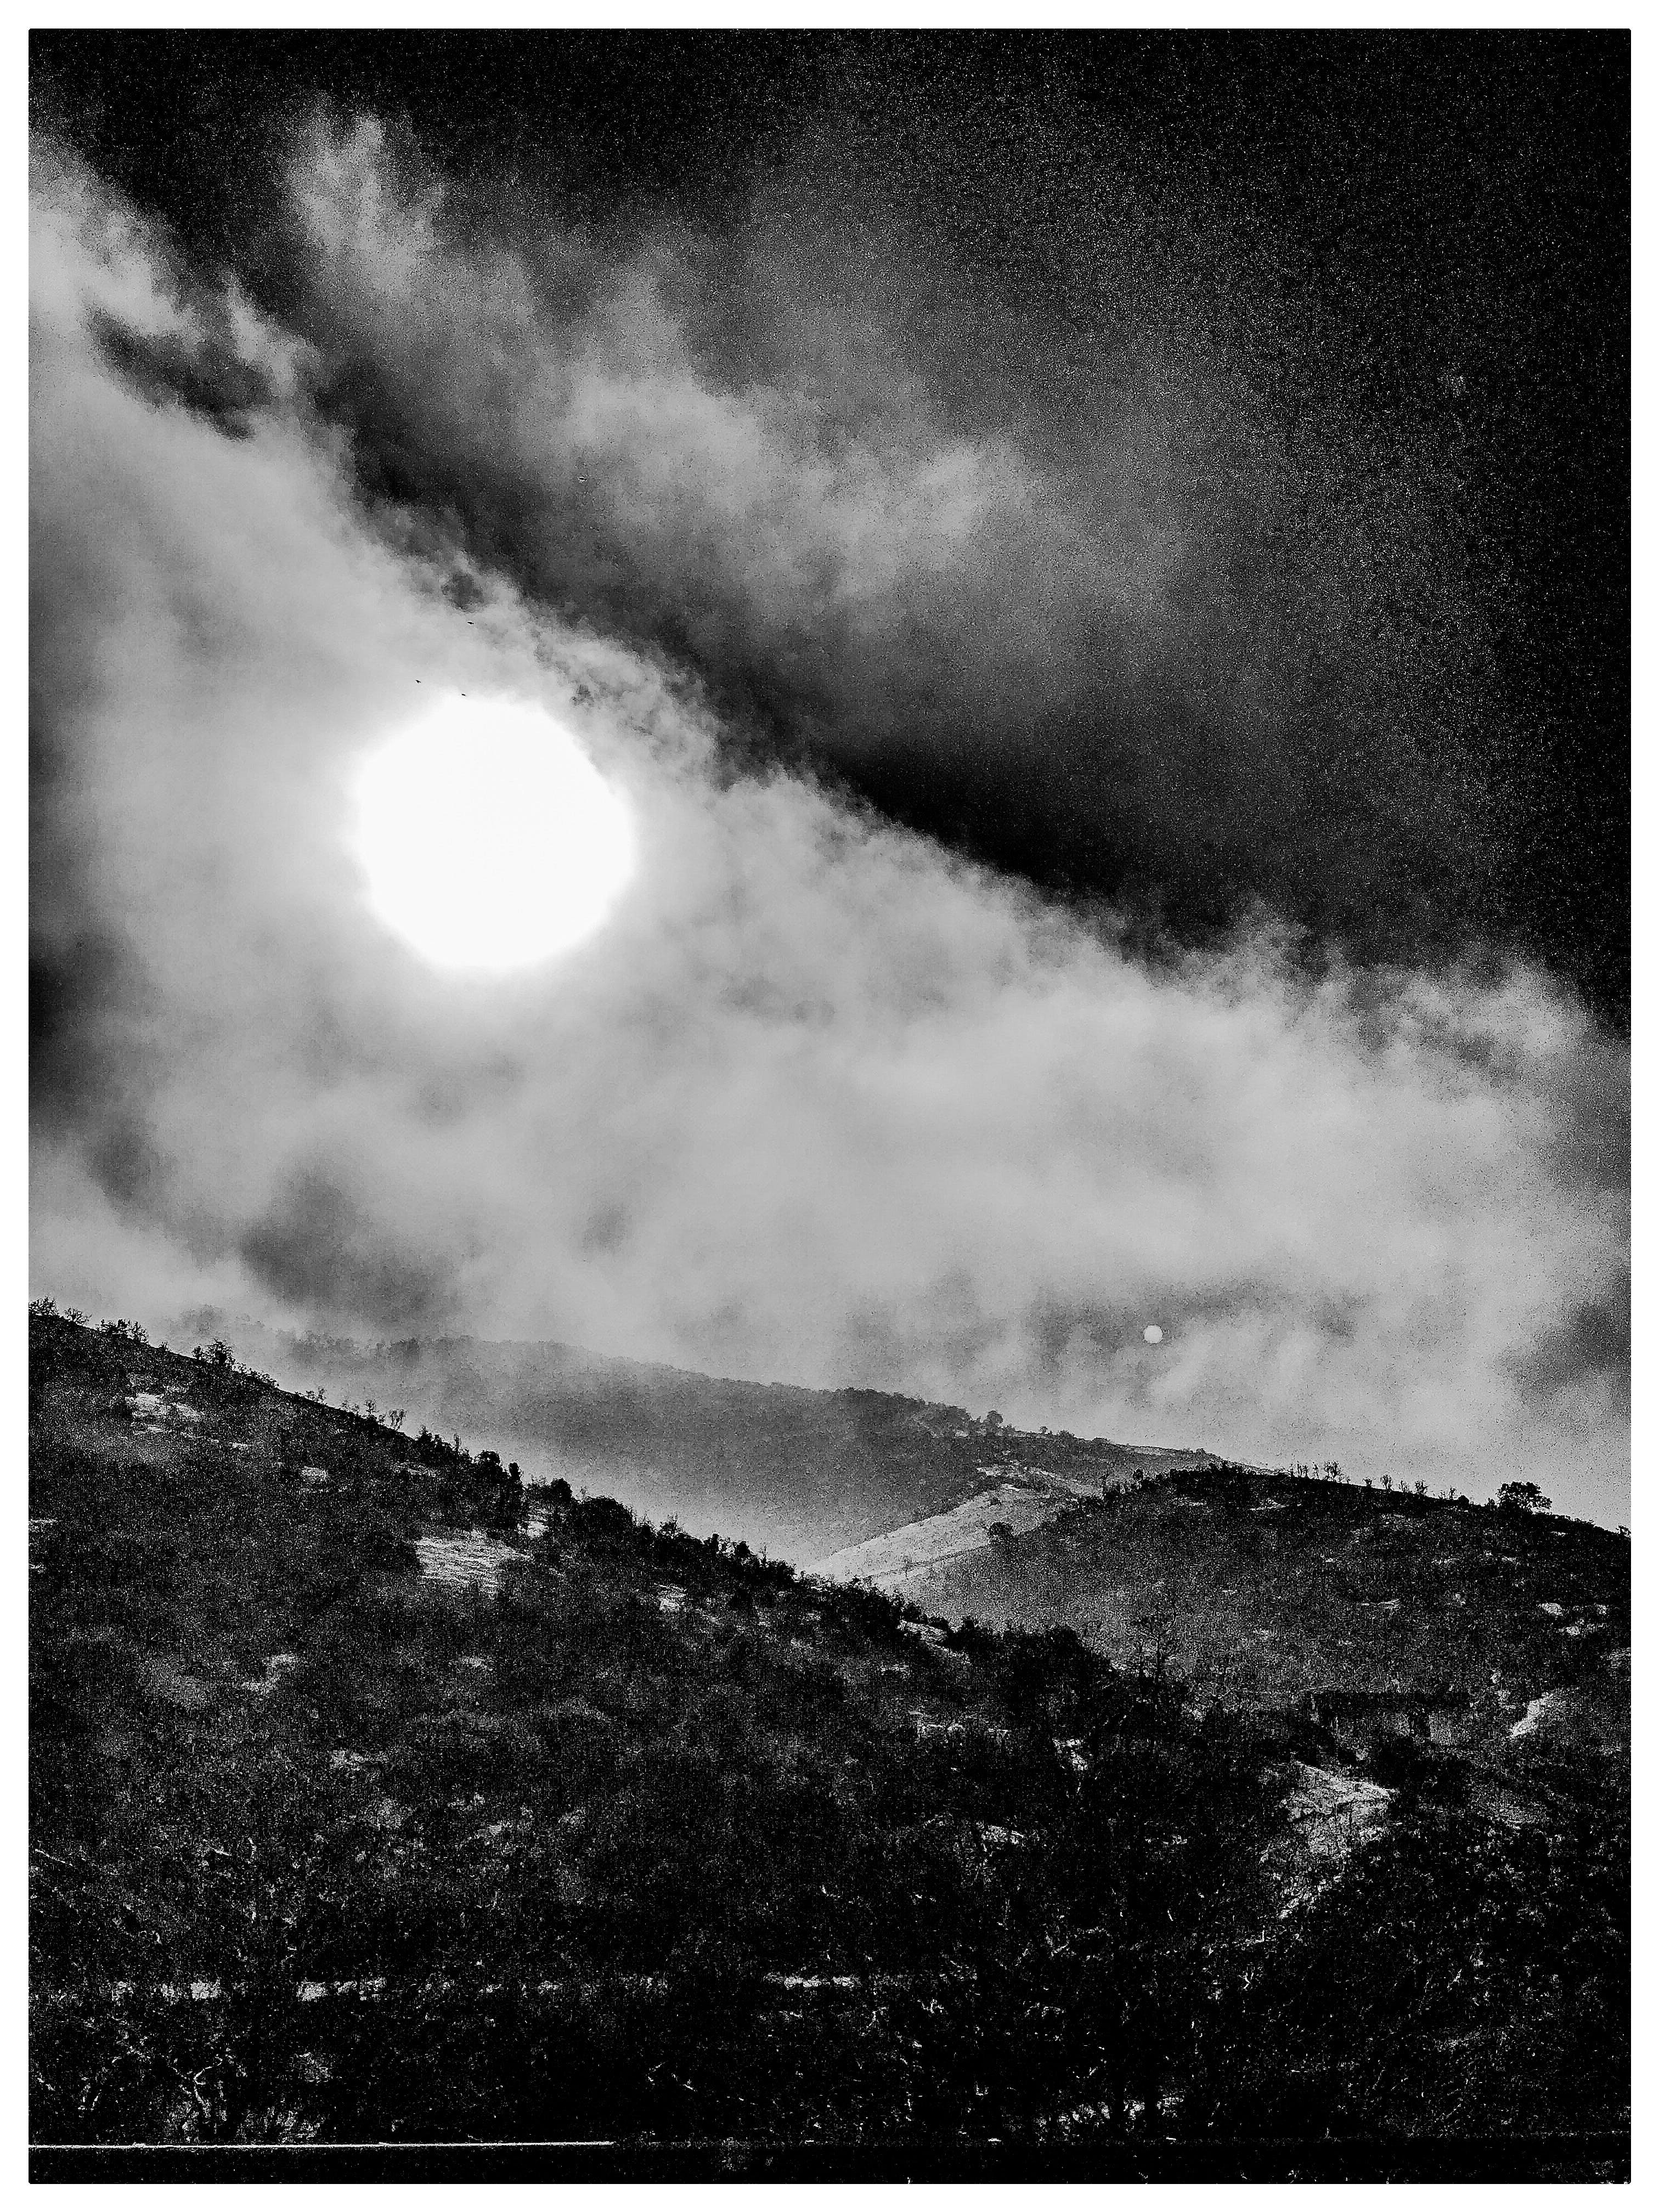 Grayscale Photo of Moon and Forest